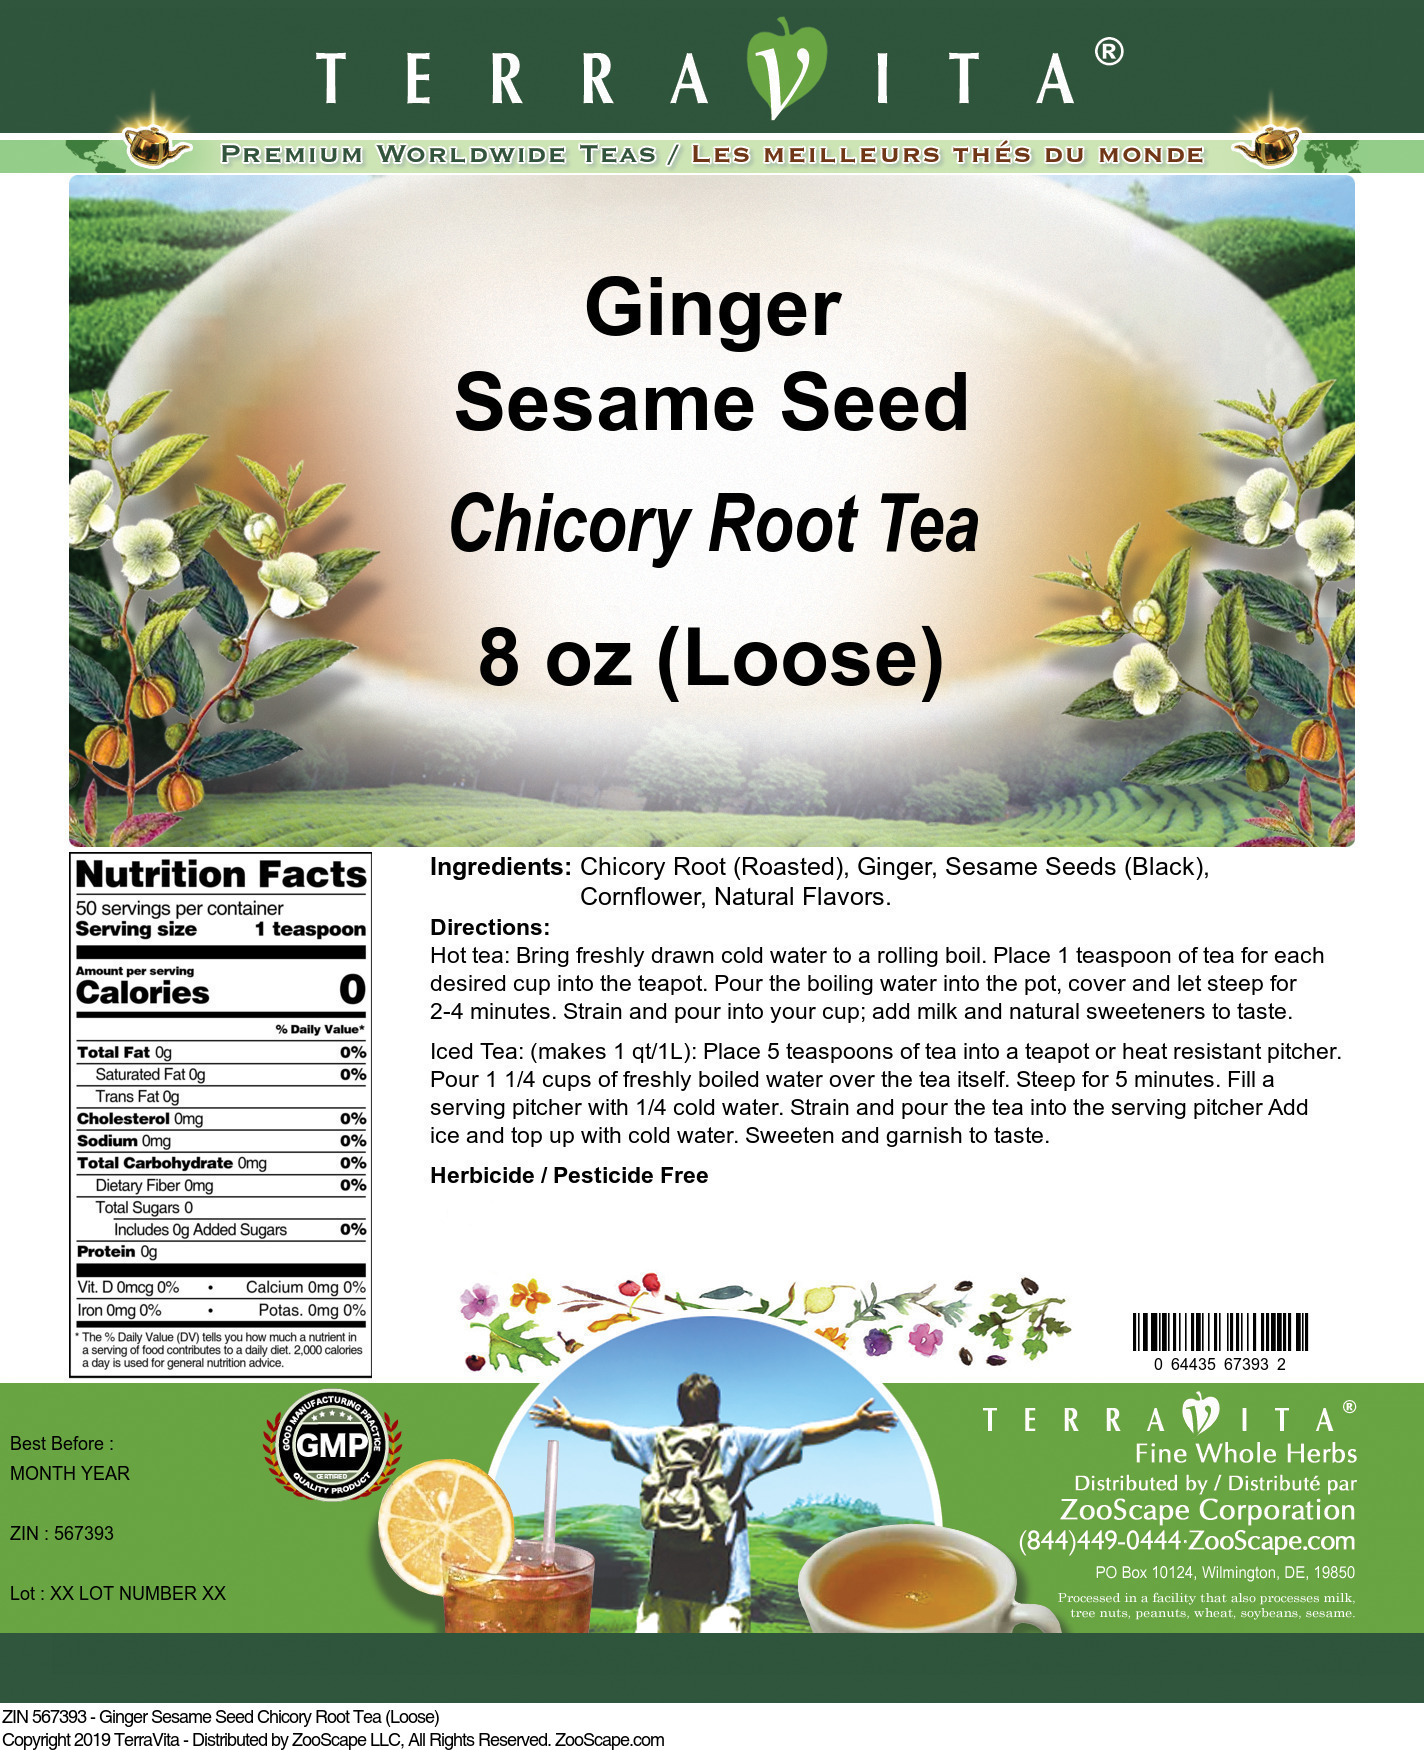 Ginger Sesame Seed Chicory Root Tea (Loose)